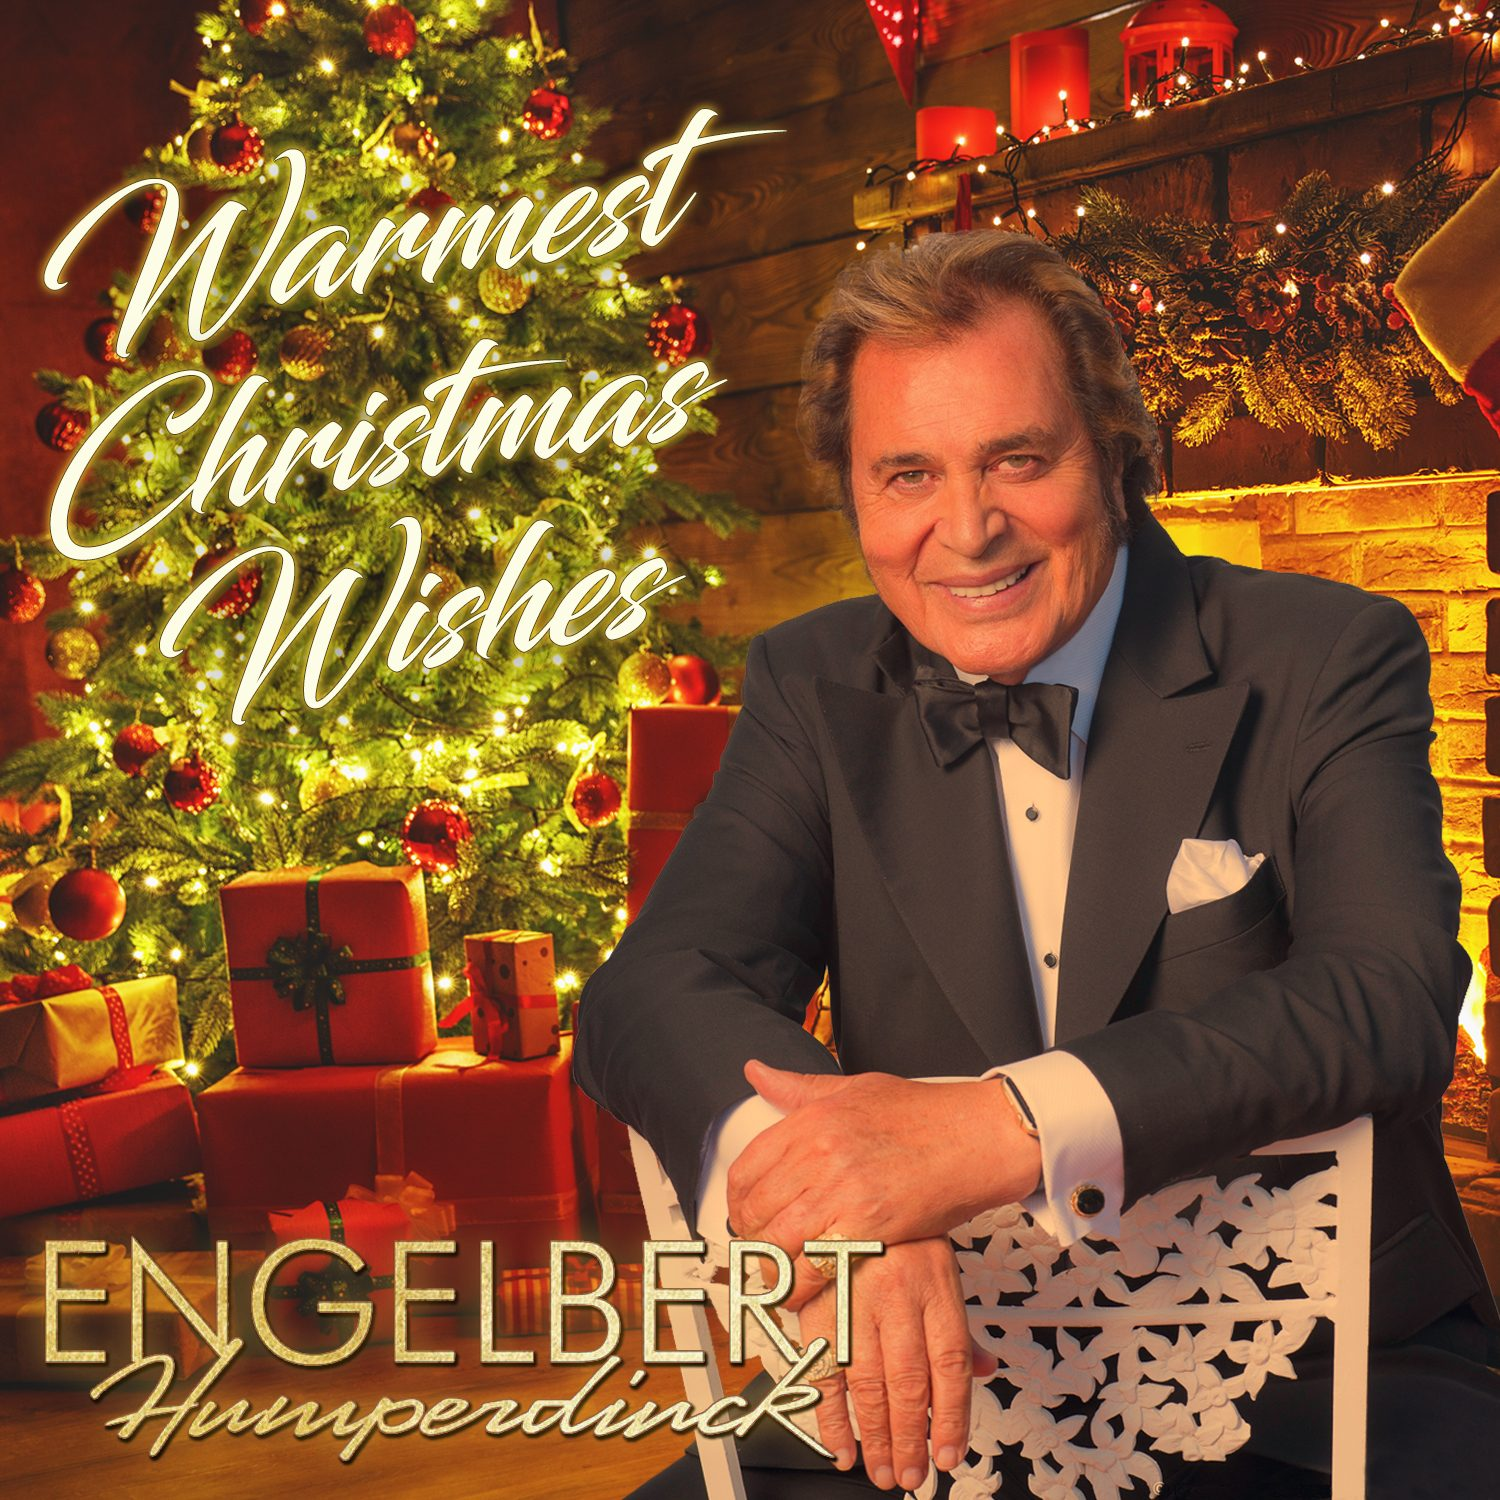 Christmas Album Cover Art.Engelbert Humperdinck To Release Warmest Christmas Wishes